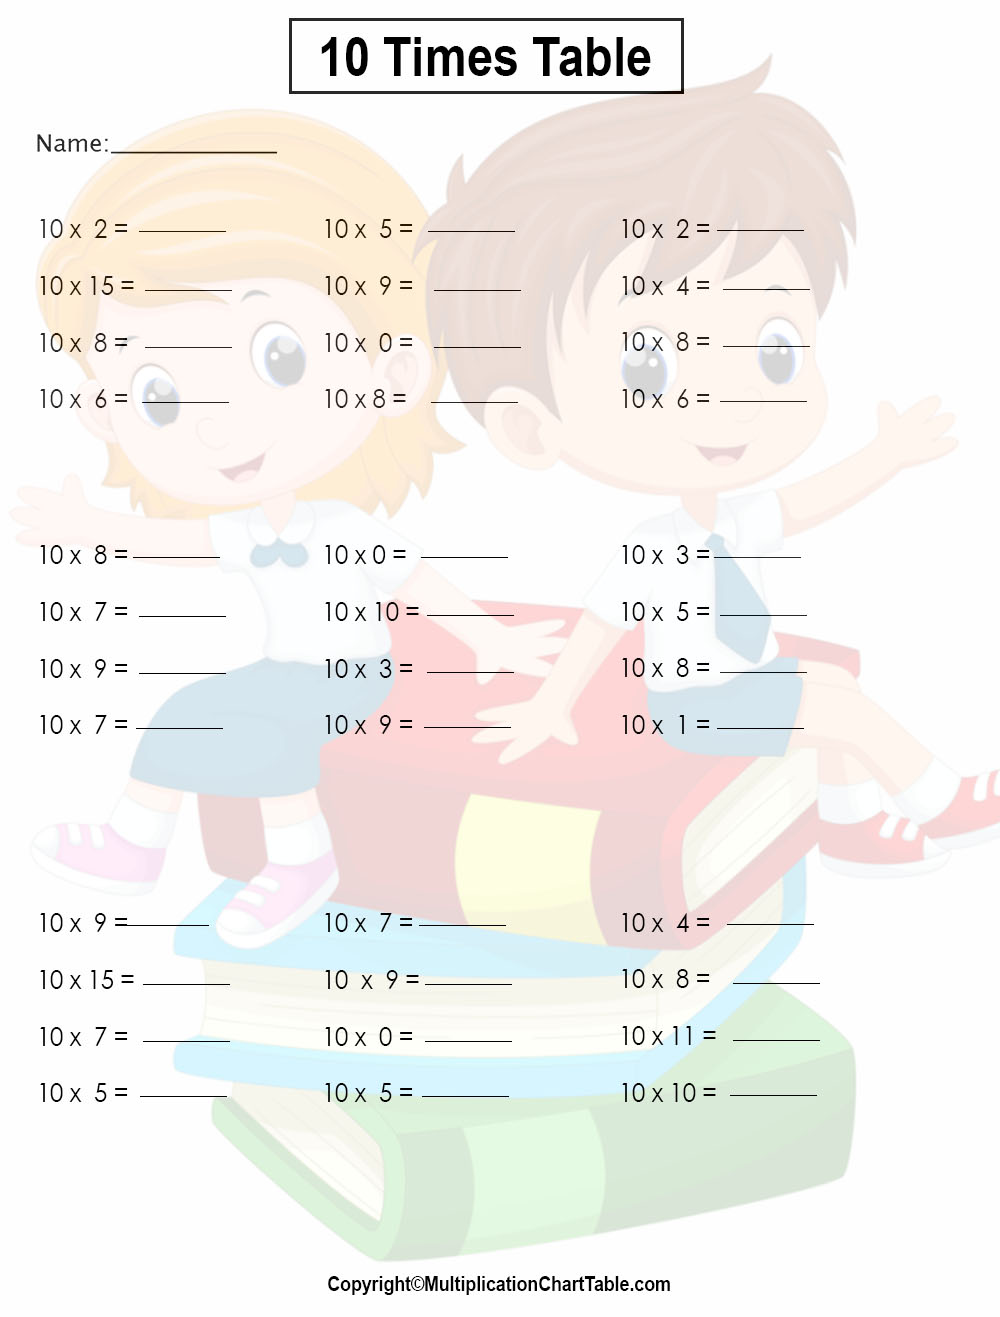 10 times table worksheets